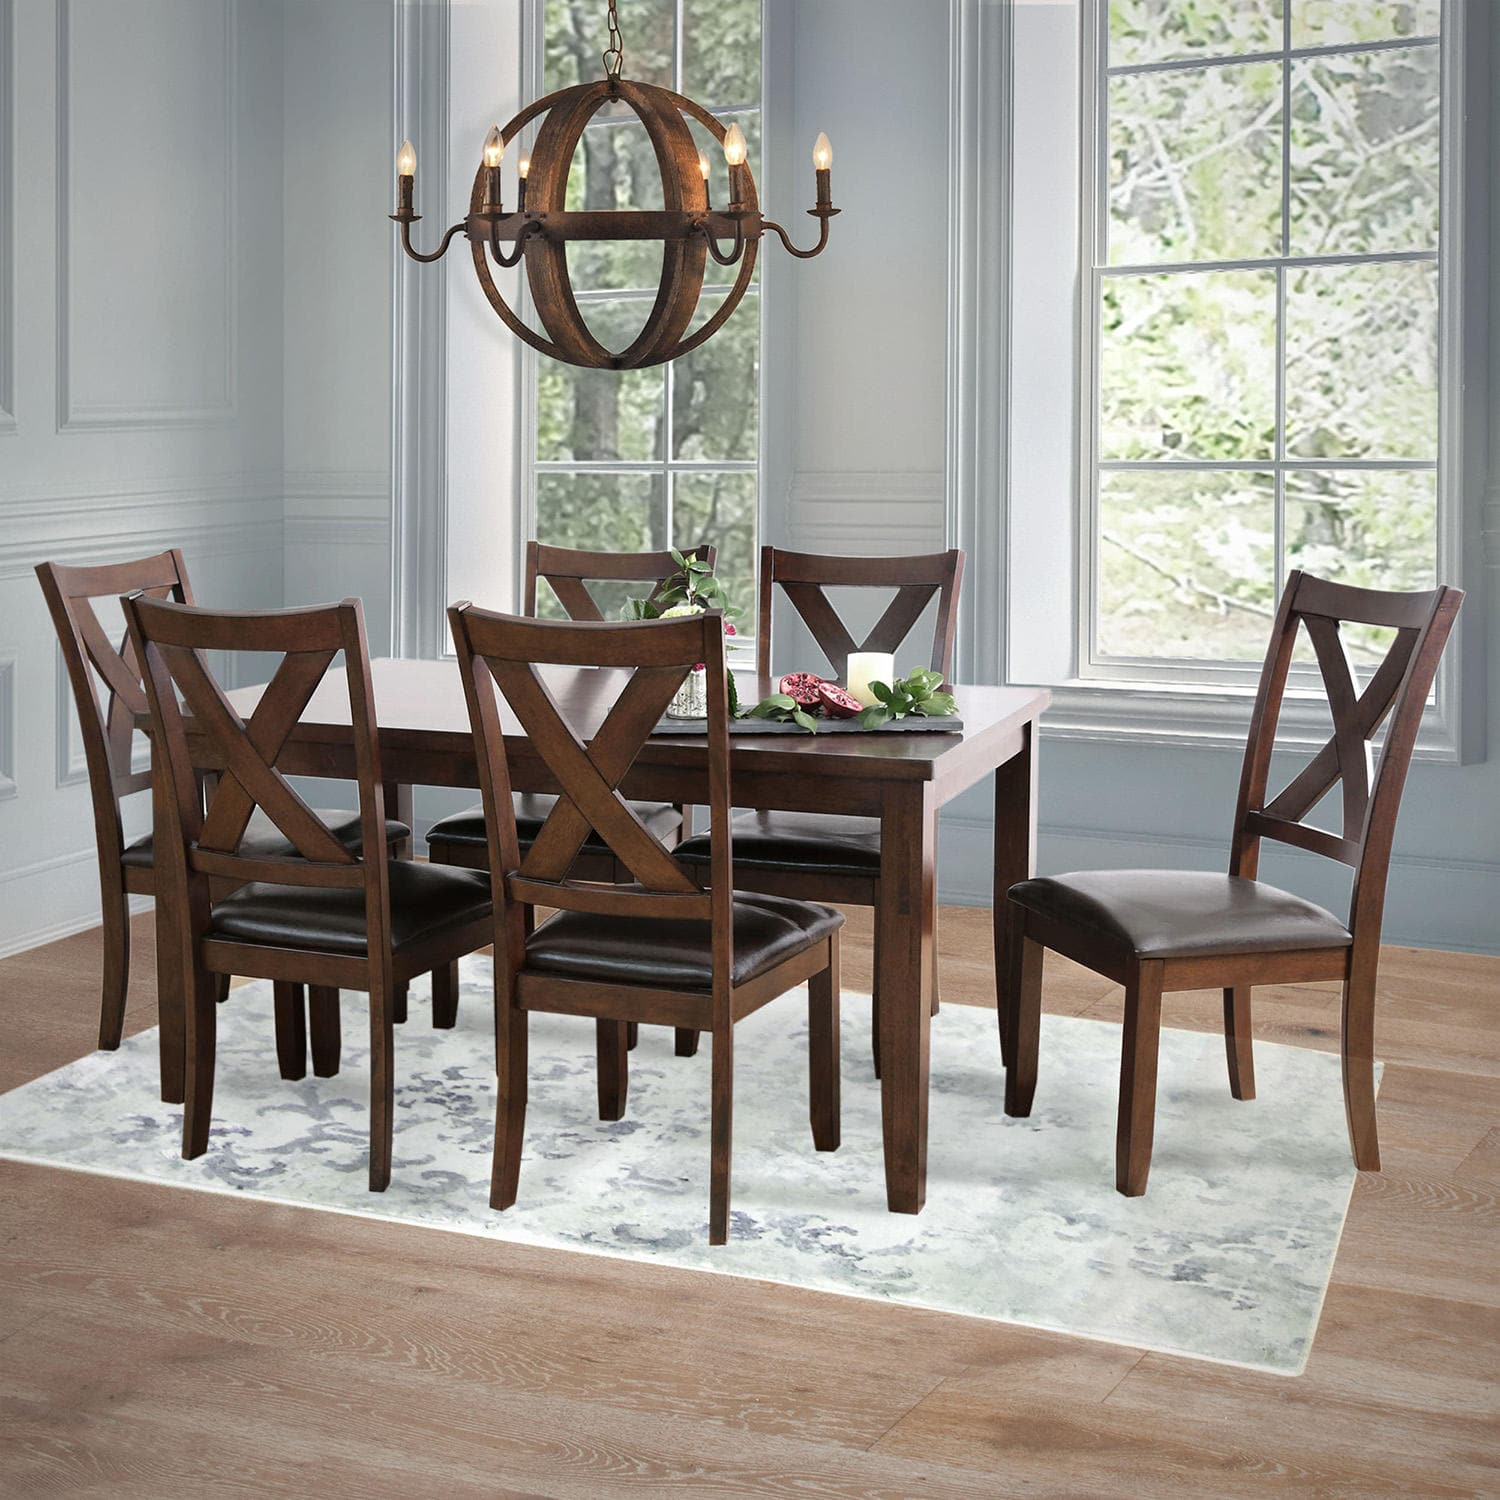 Sam's Club Members: 7-Piece Edgewater Solid Wood Dining Furniture Set (Espresso)